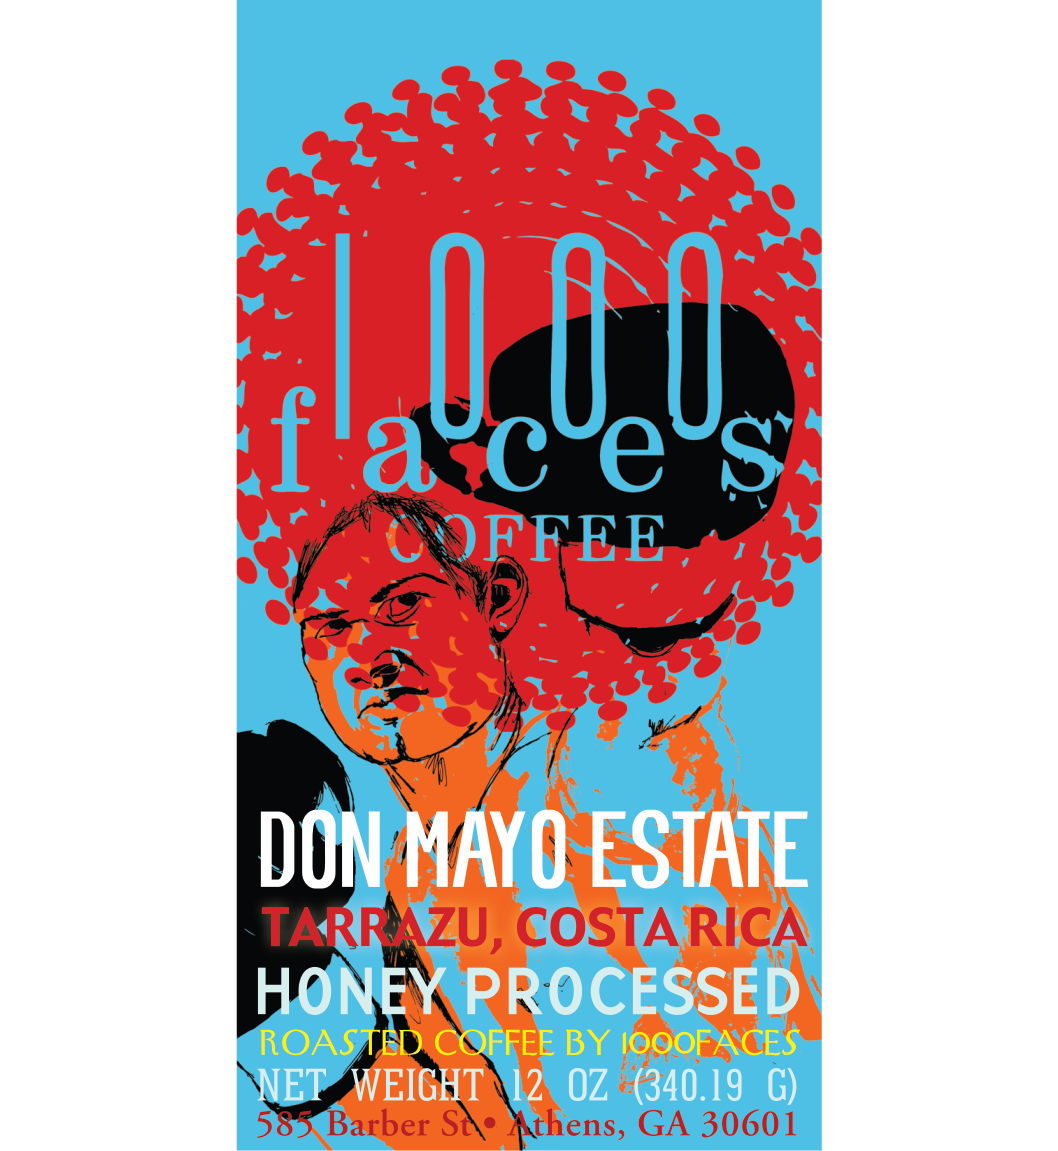 1000labels-donmayo-01-01.png